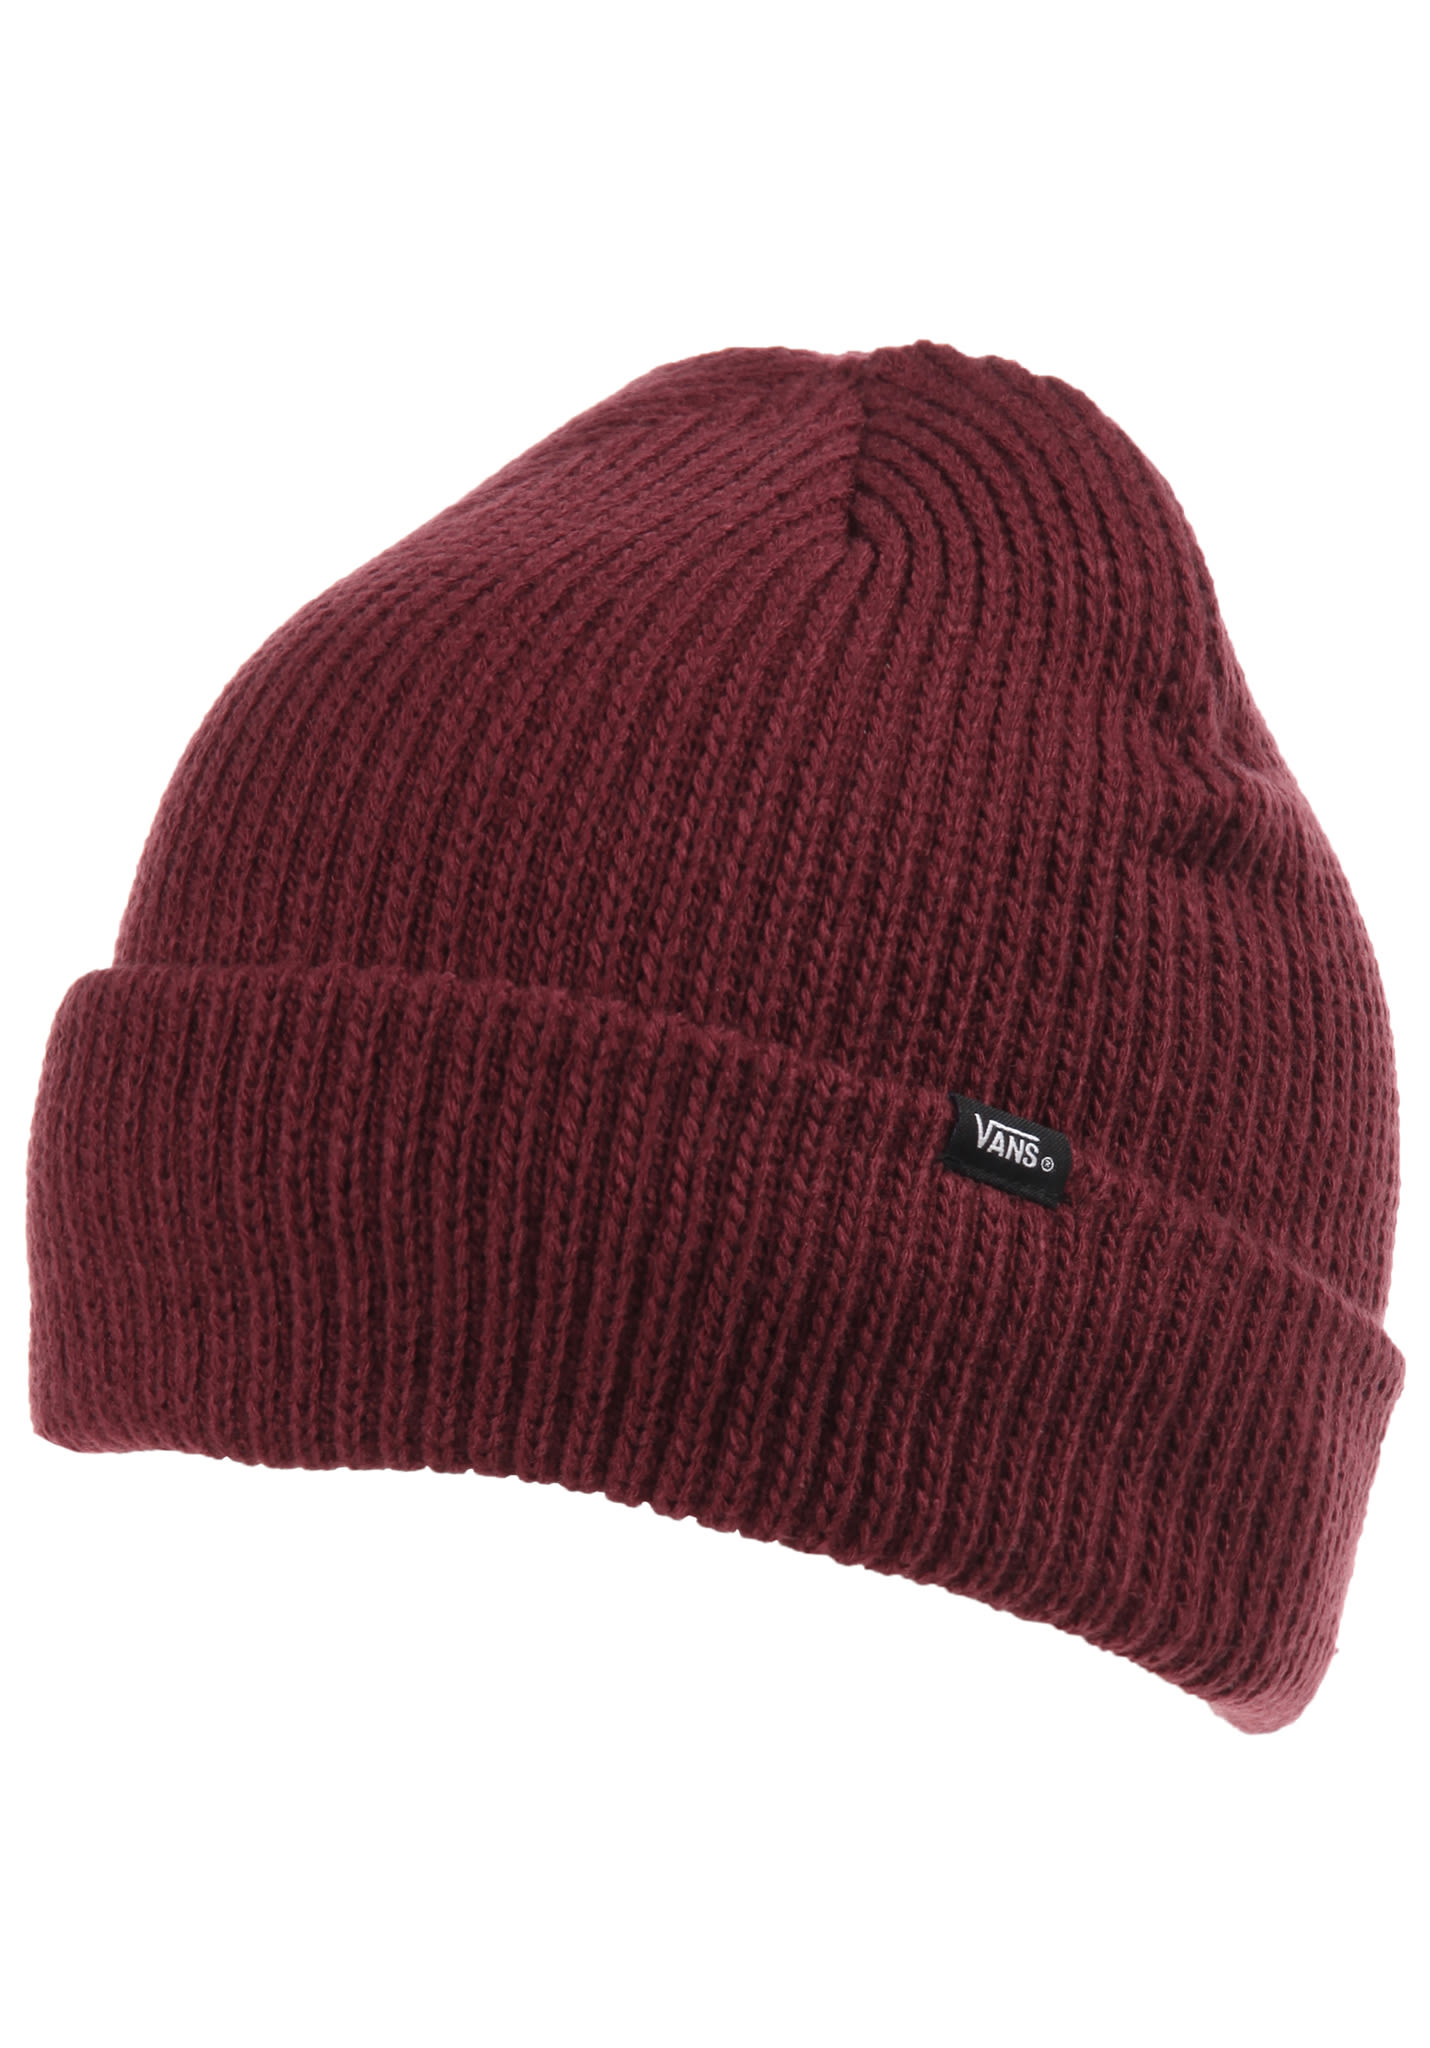 Vans Core Basics - Beanie - Red - Planet Sports 0986e455df18